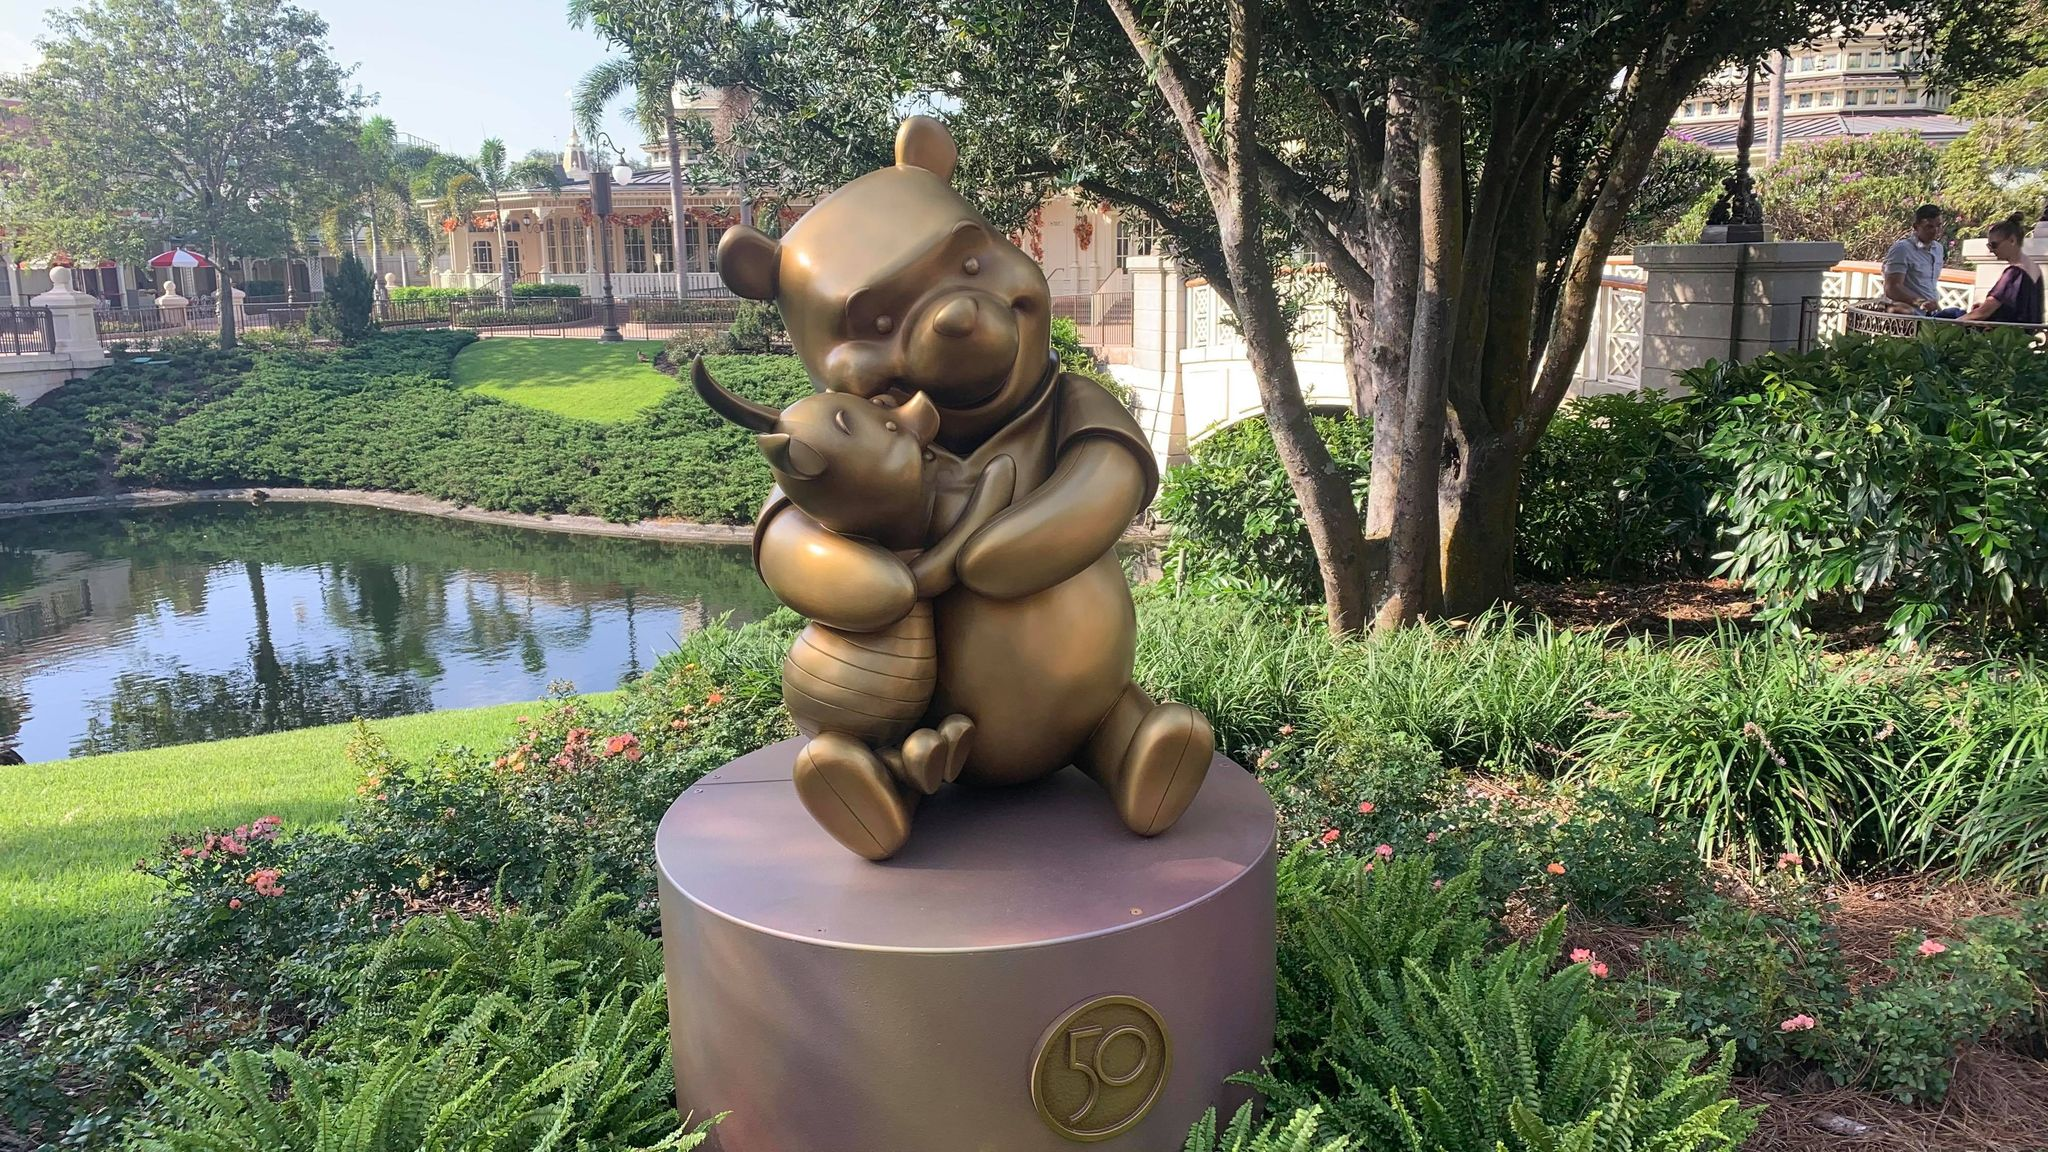 First Look: Disney Fab 50 statues now on display in the Magic Kingdom 9